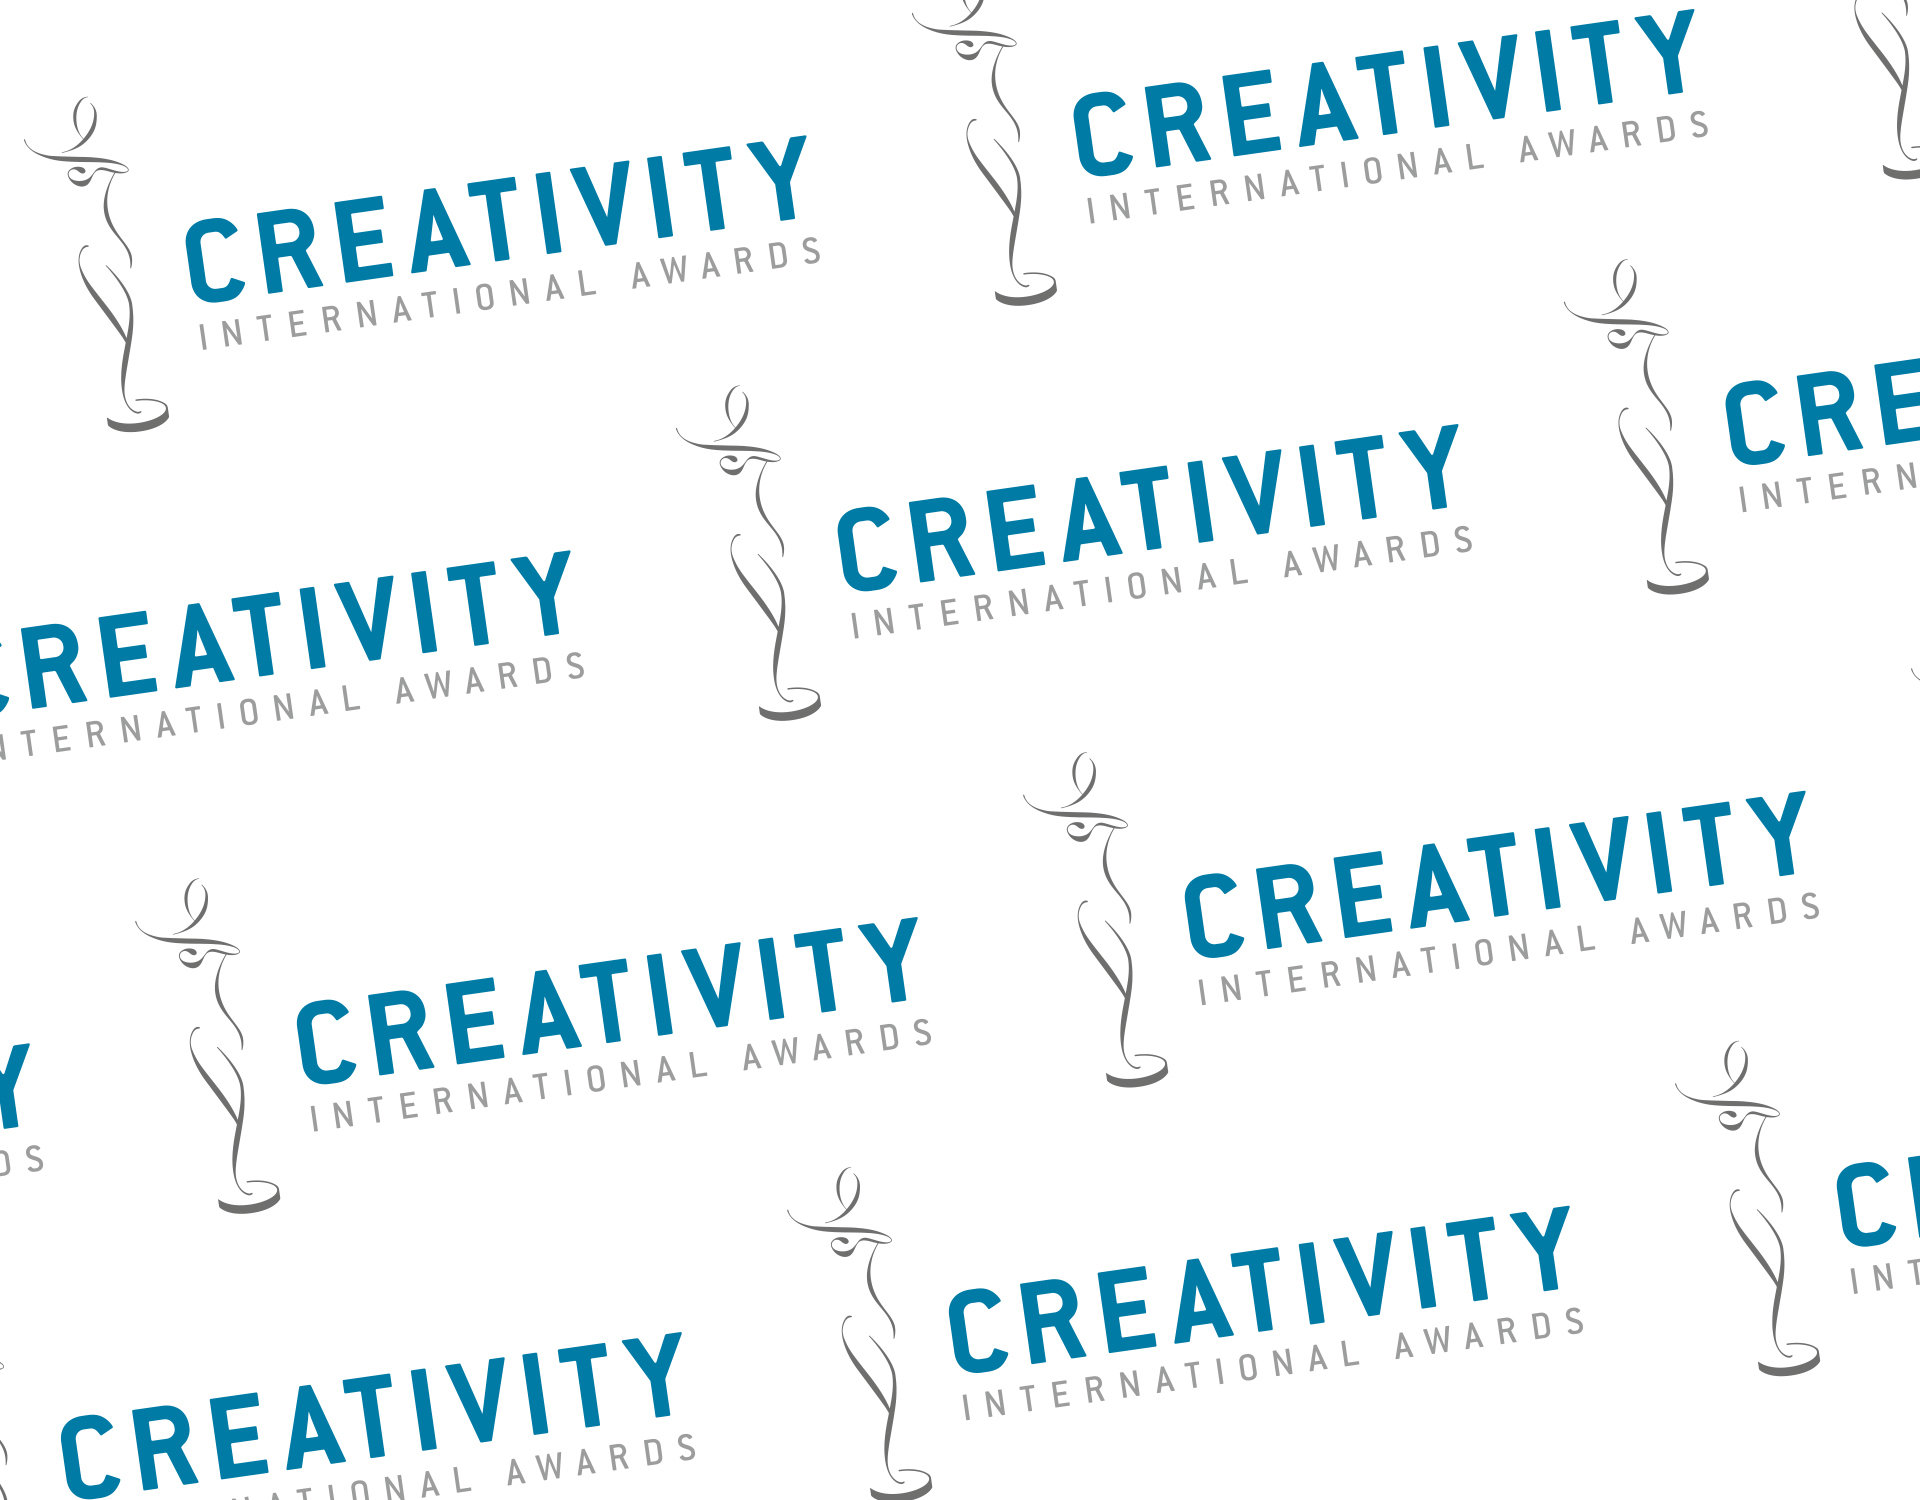 Podwójne złoto w konkursie Creativity International Awards!